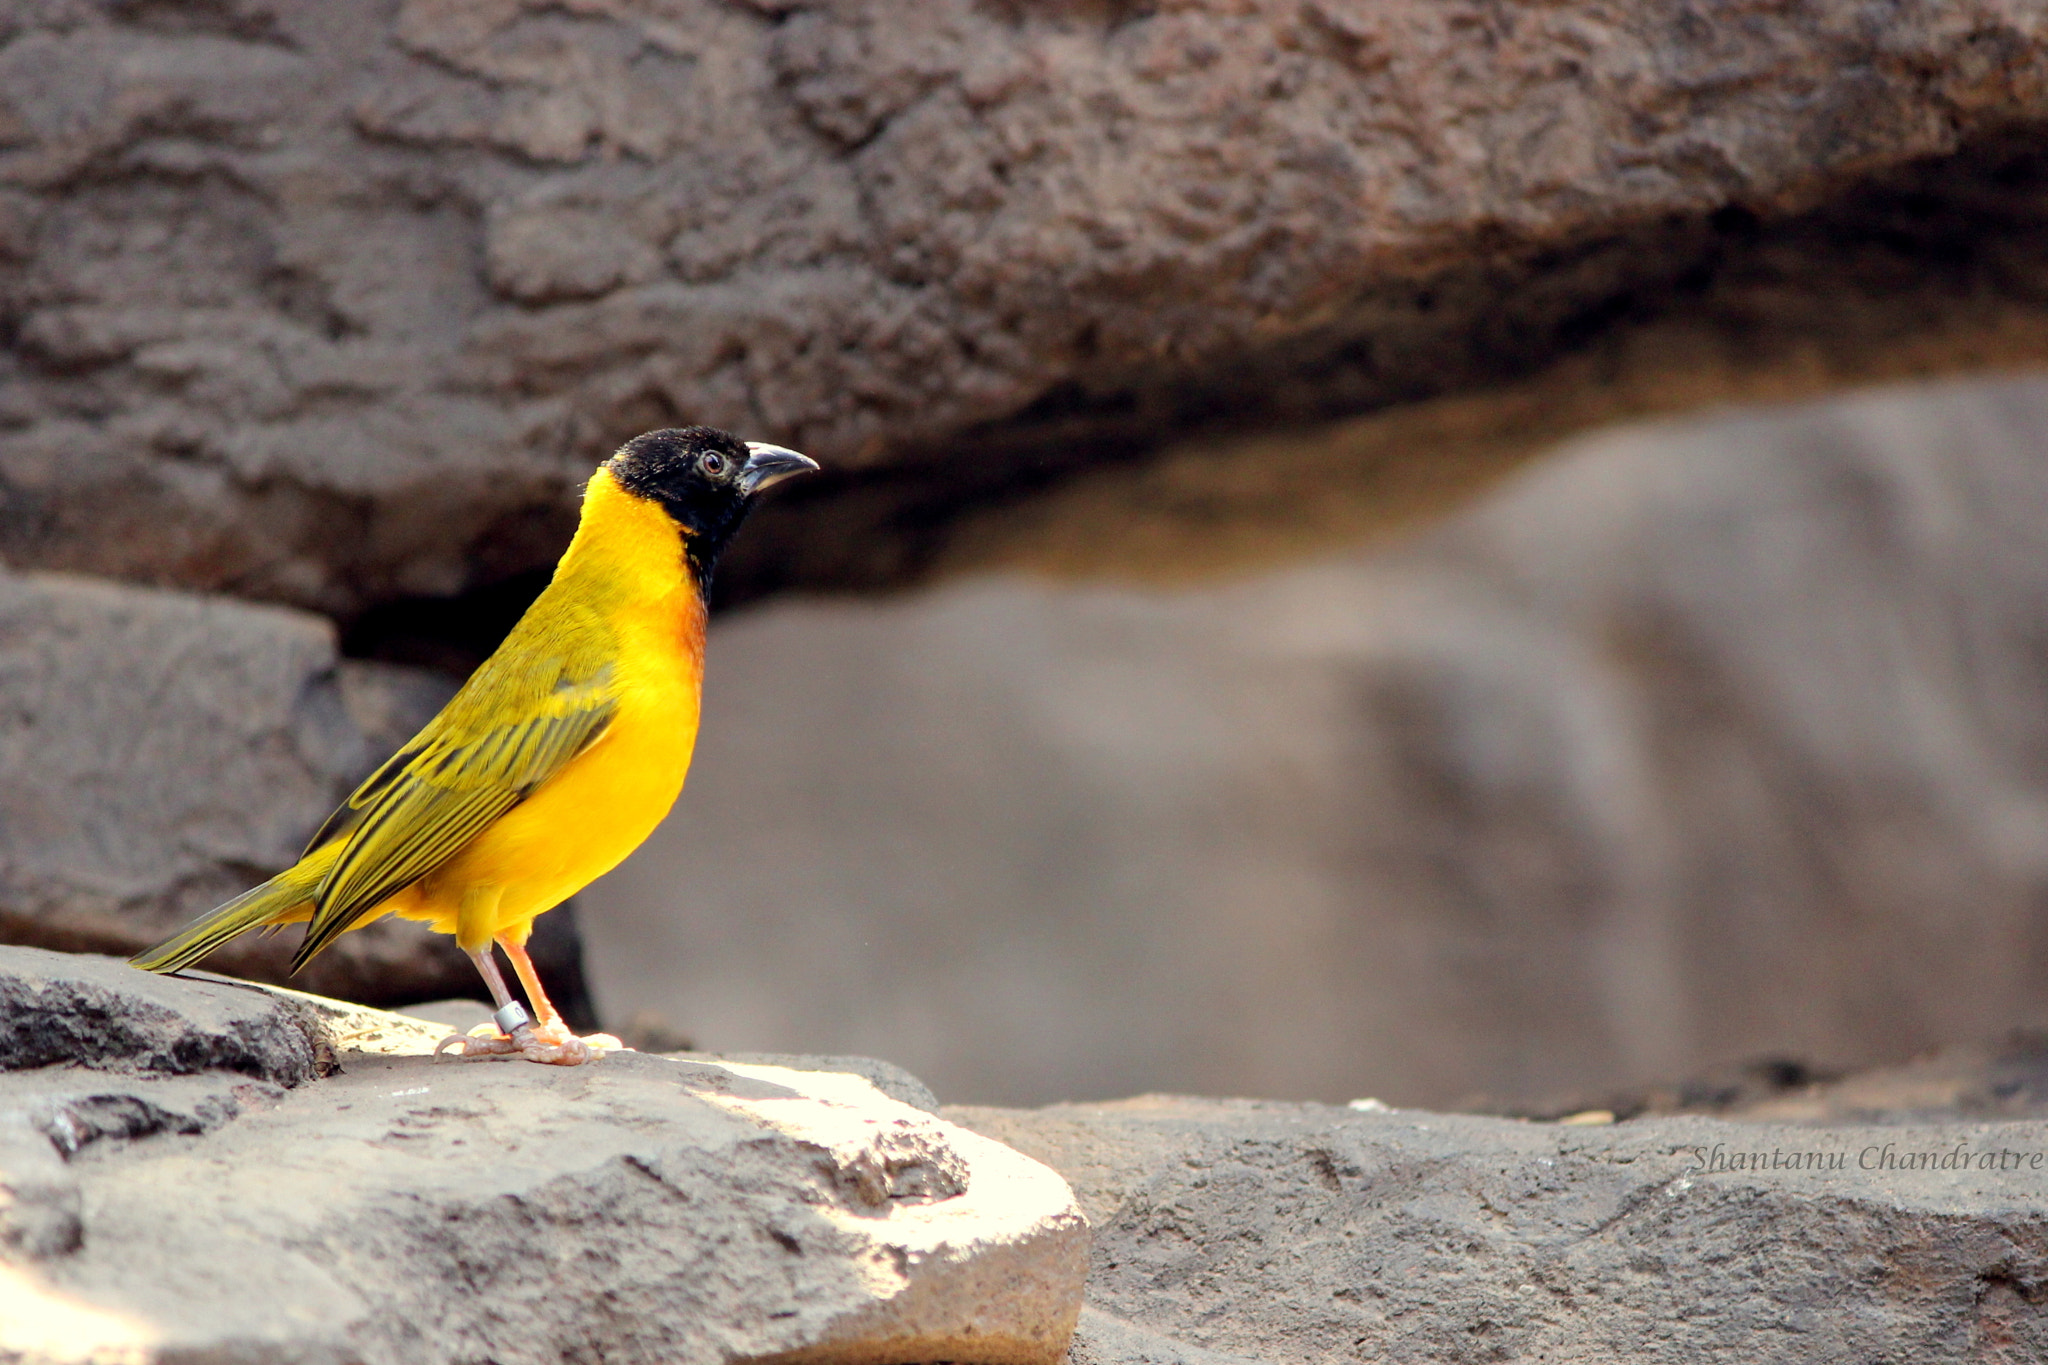 Photograph The yellow bird!  by Shantanu Chandratre on 500px